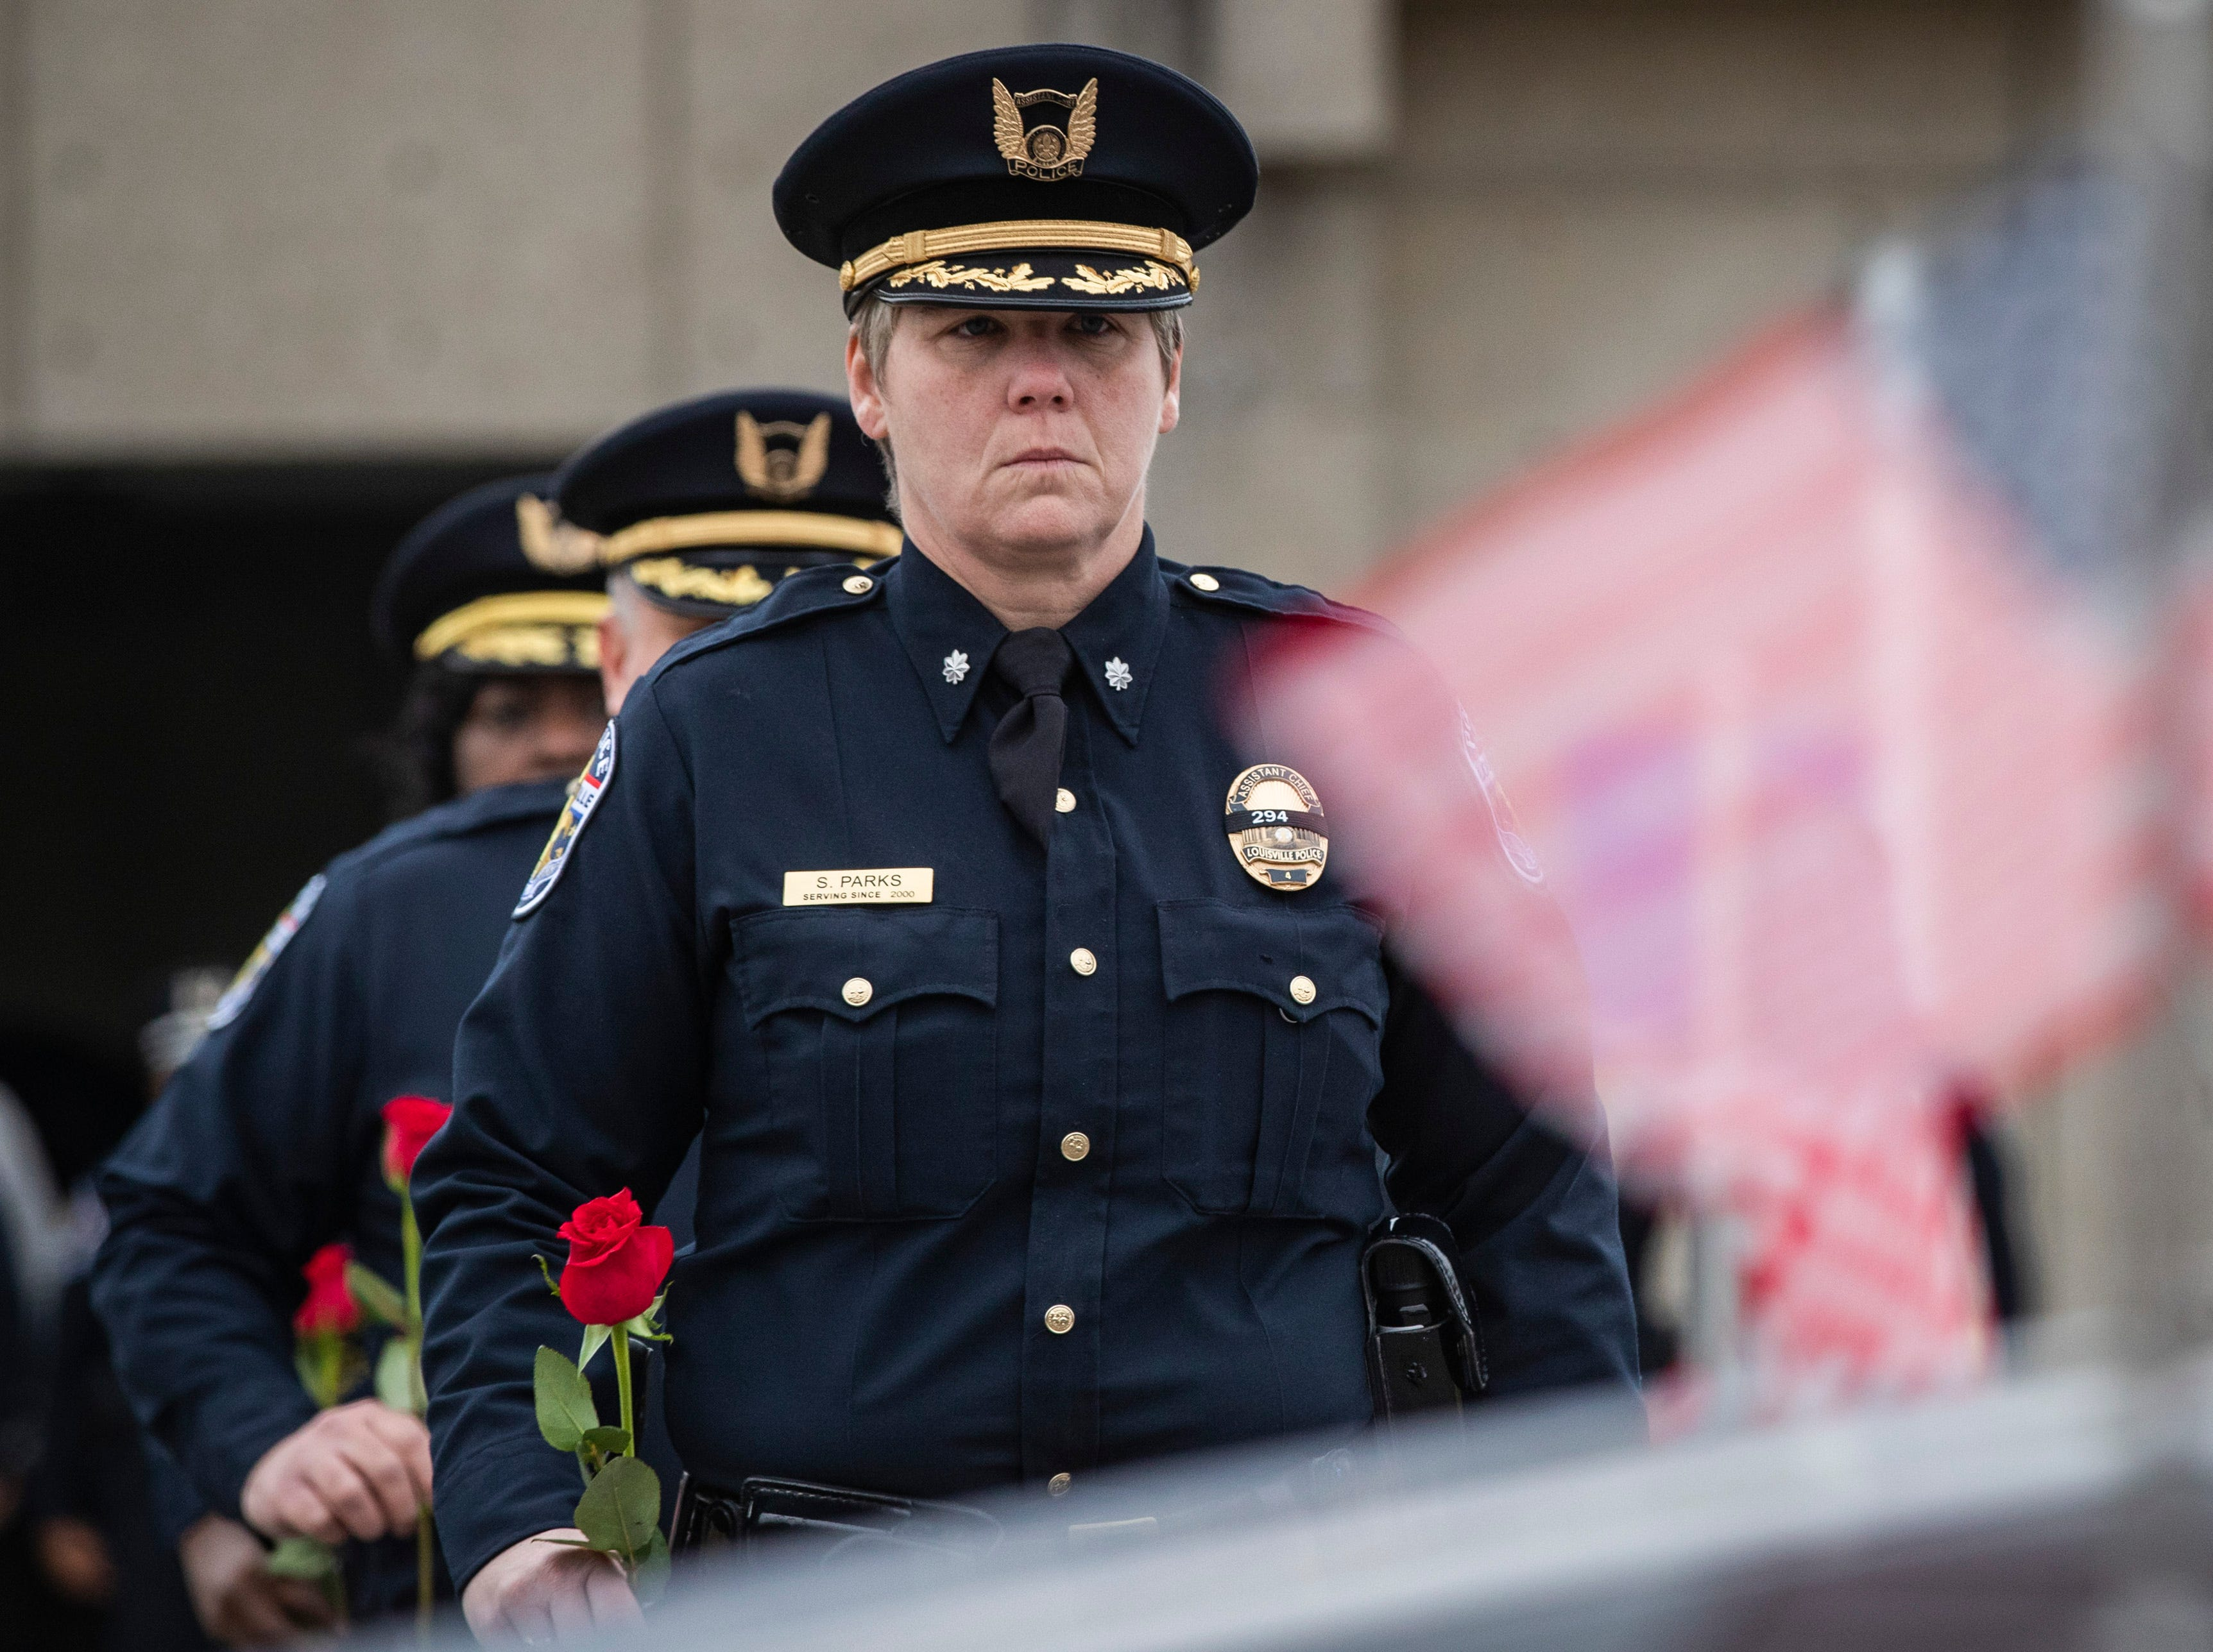 LMPD assistant chief of police, Shara Parks, carries a rose to be placed on the hearse carrying Det. Deidre Mengedoht during a stop at the LMPD 2nd Division headquarters in Park DuValle. December 29, 2018